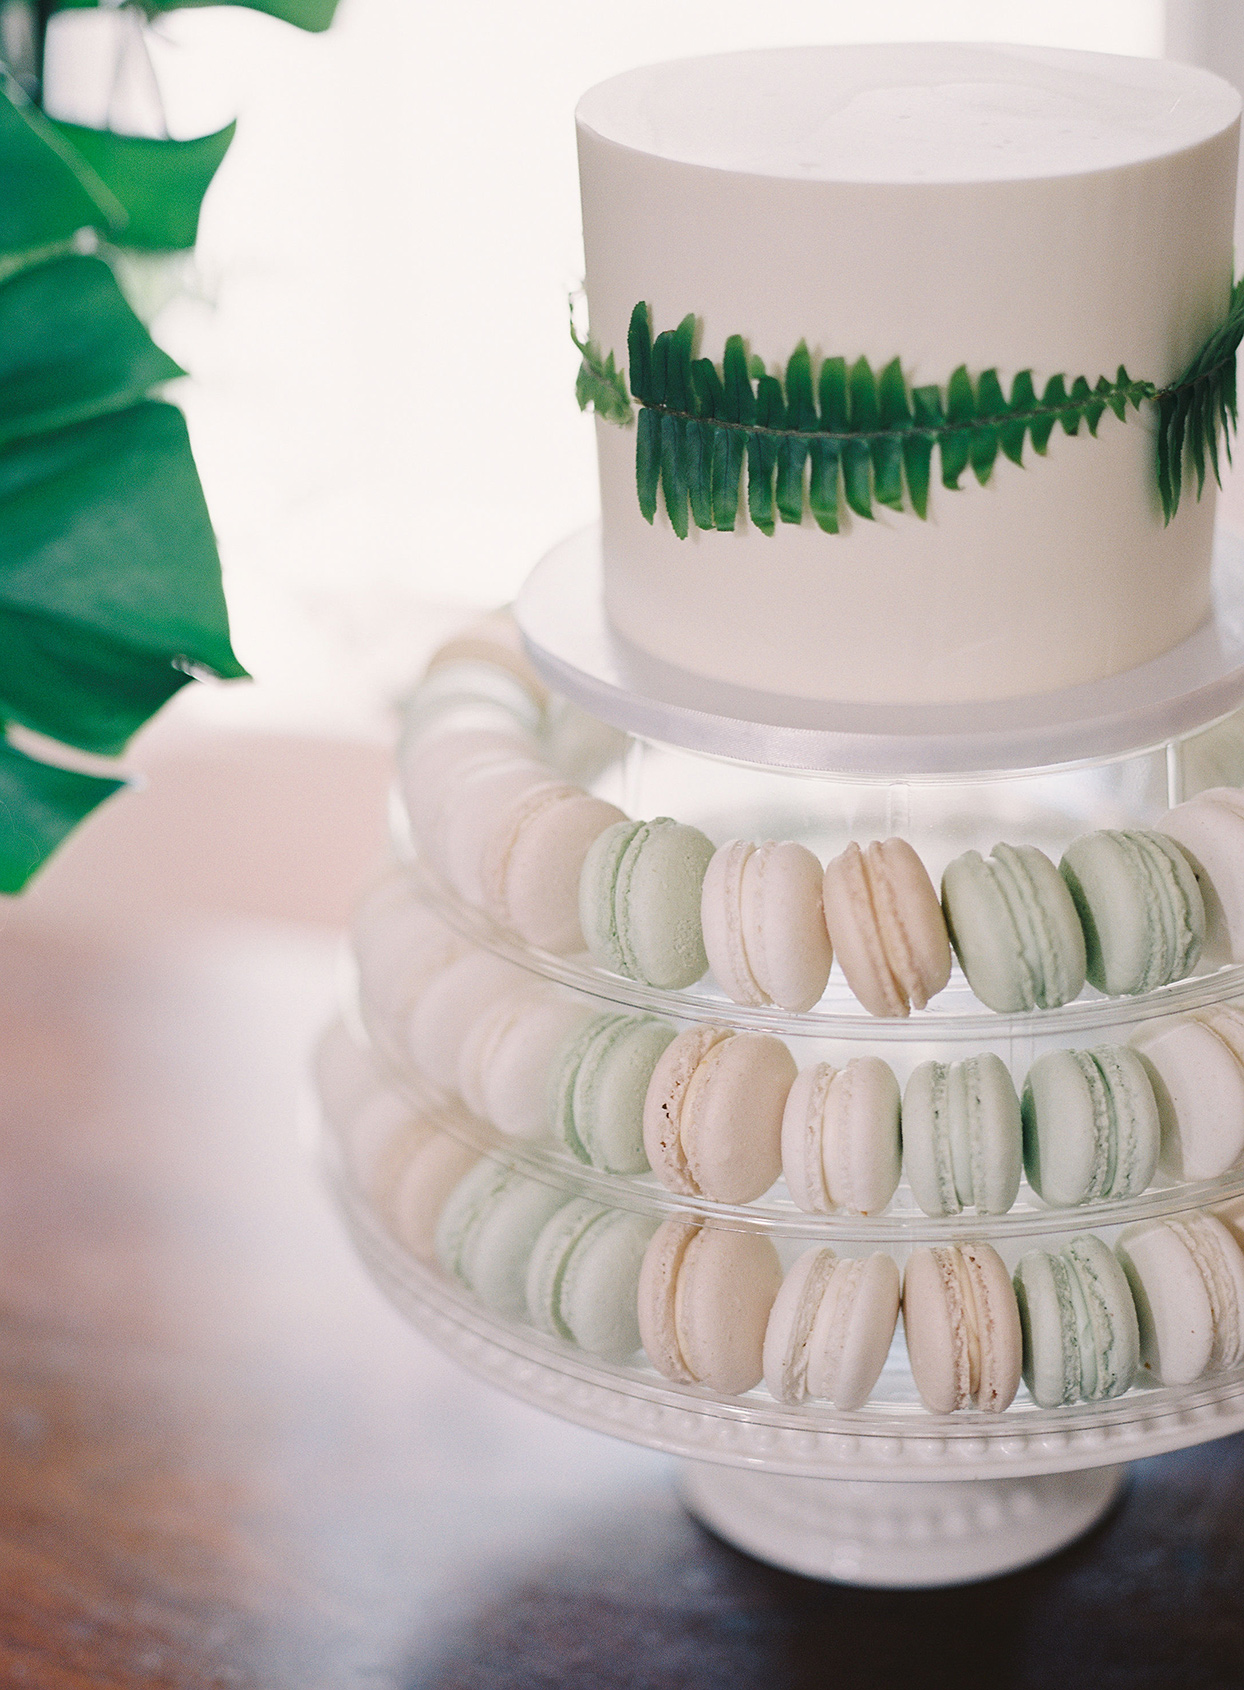 beverly steve wedding cake with macarons